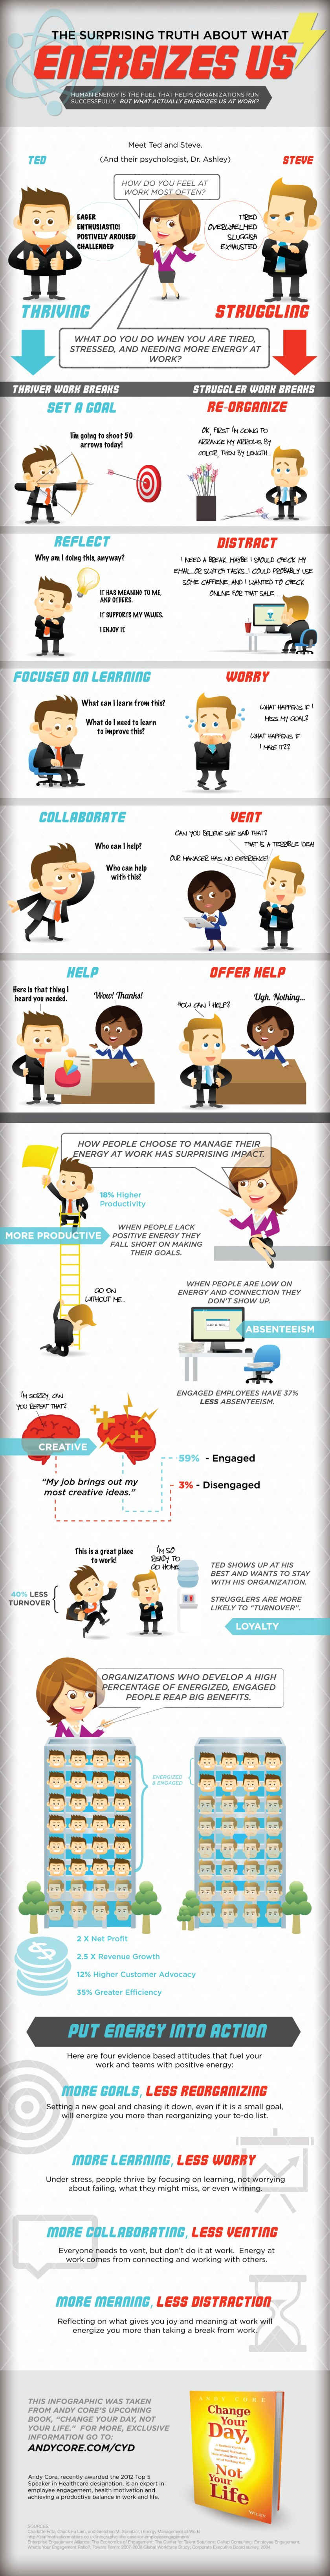 How-to-Feel-More-Energetic-at-Work-and-Increase-Productivity-Infographic